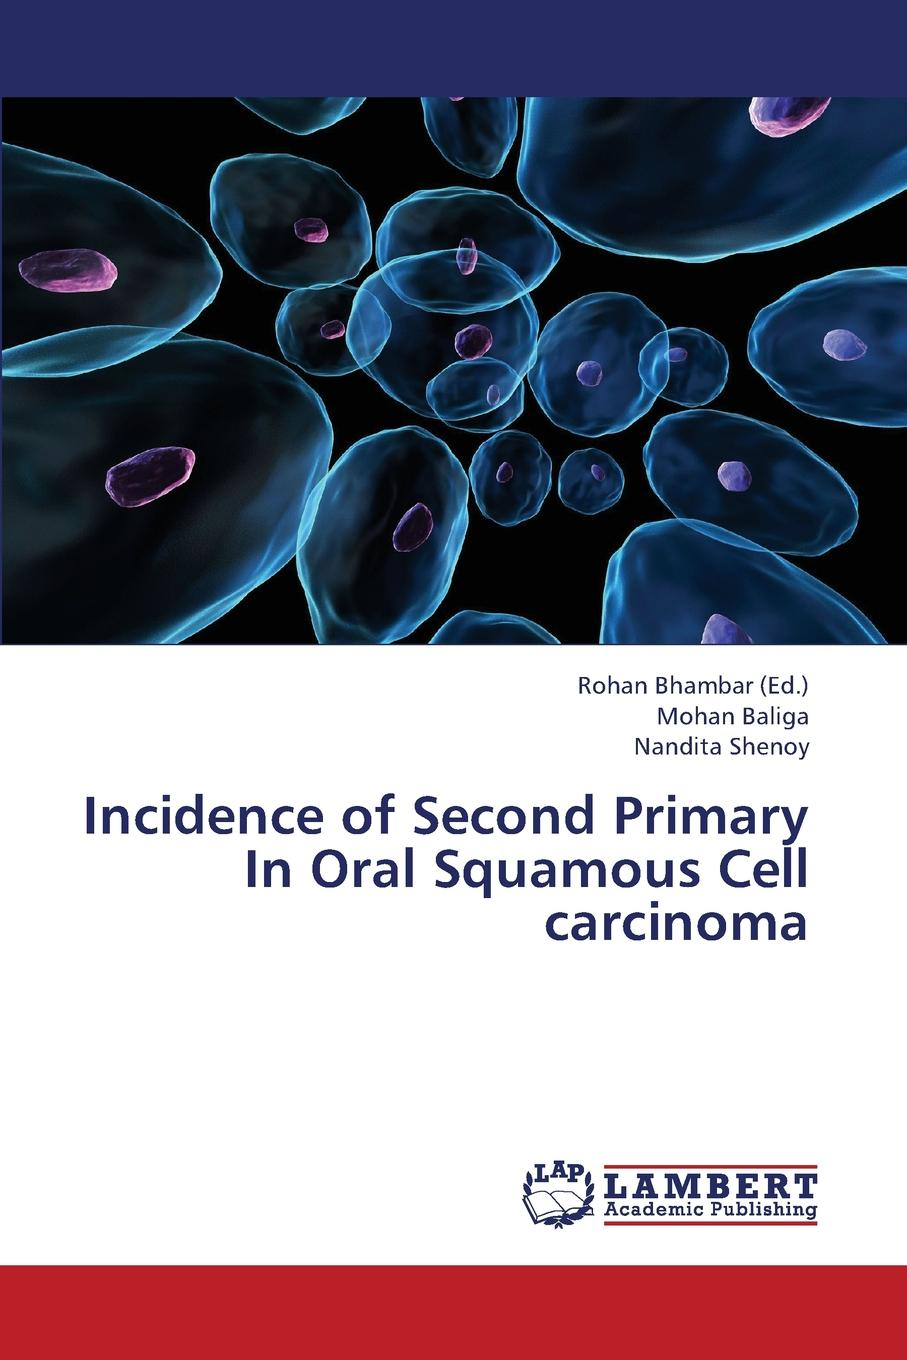 Baliga Mohan, Shenoy Nandita Incidence of Second Primary in Oral Squamous Cell Carcinoma kalyana chakravarthy pentapati shashidhar acharya and meghashyam bhat oral cancer in india